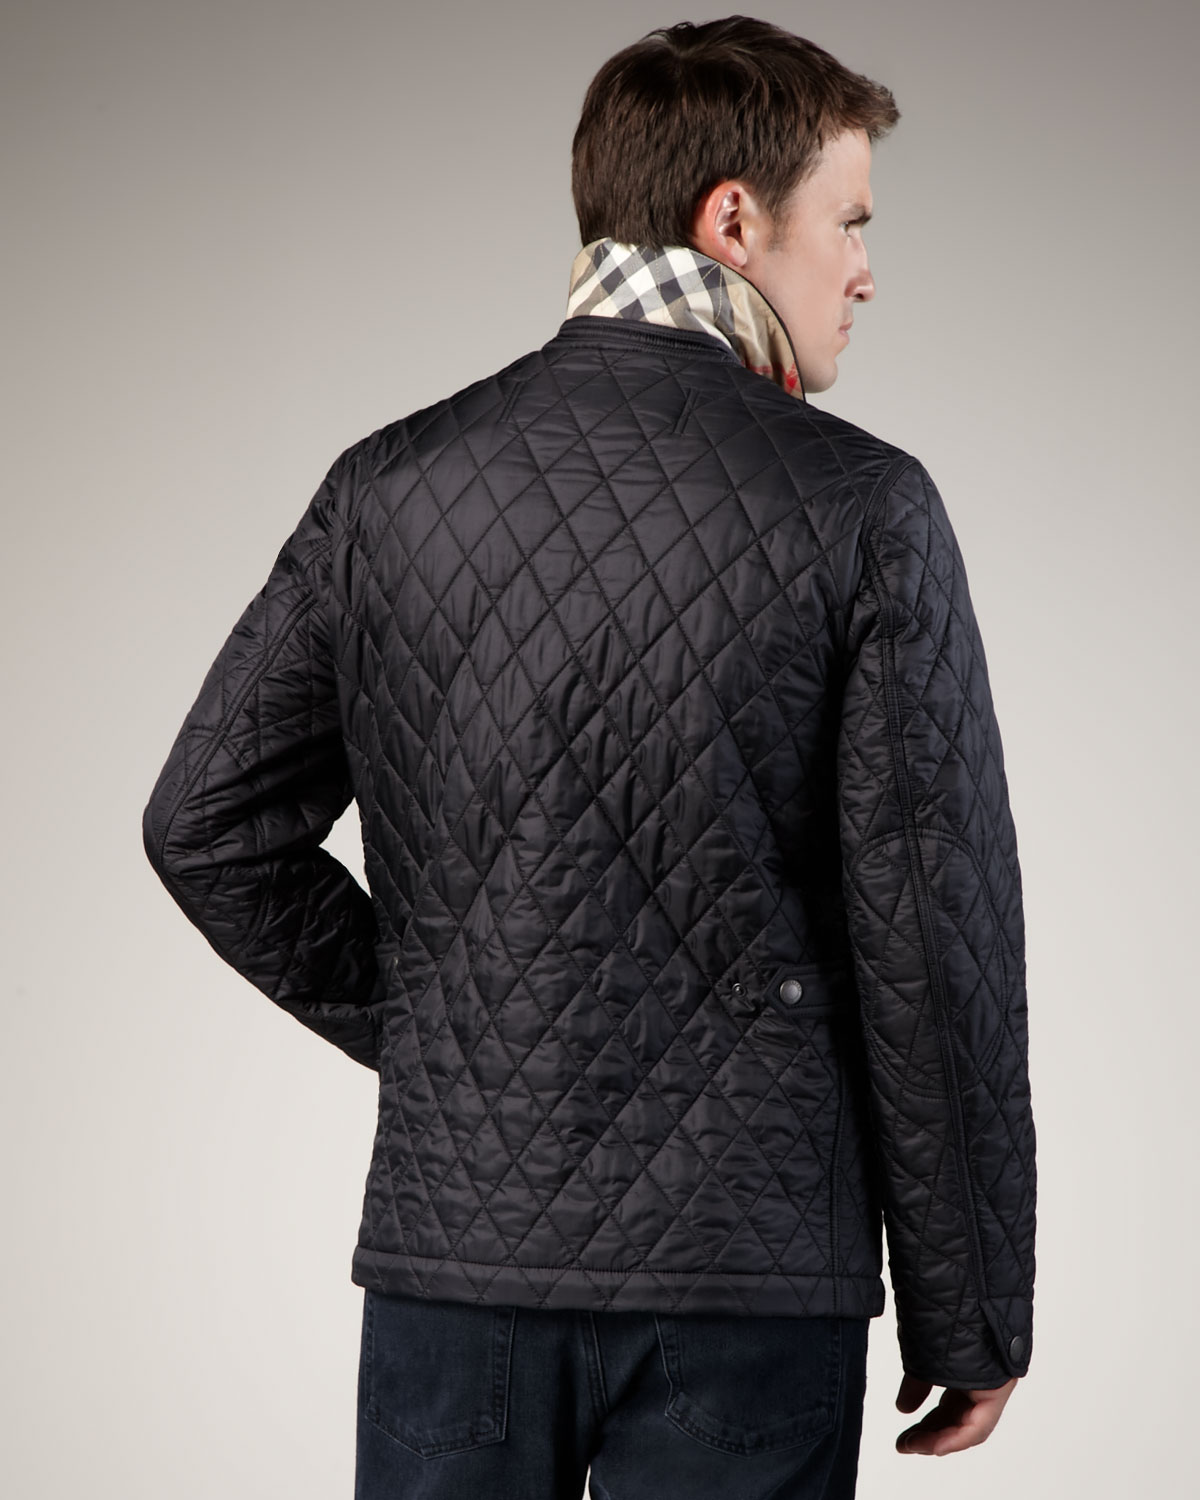 black gallery jacket image in quilted diamond burberry mens women quilt